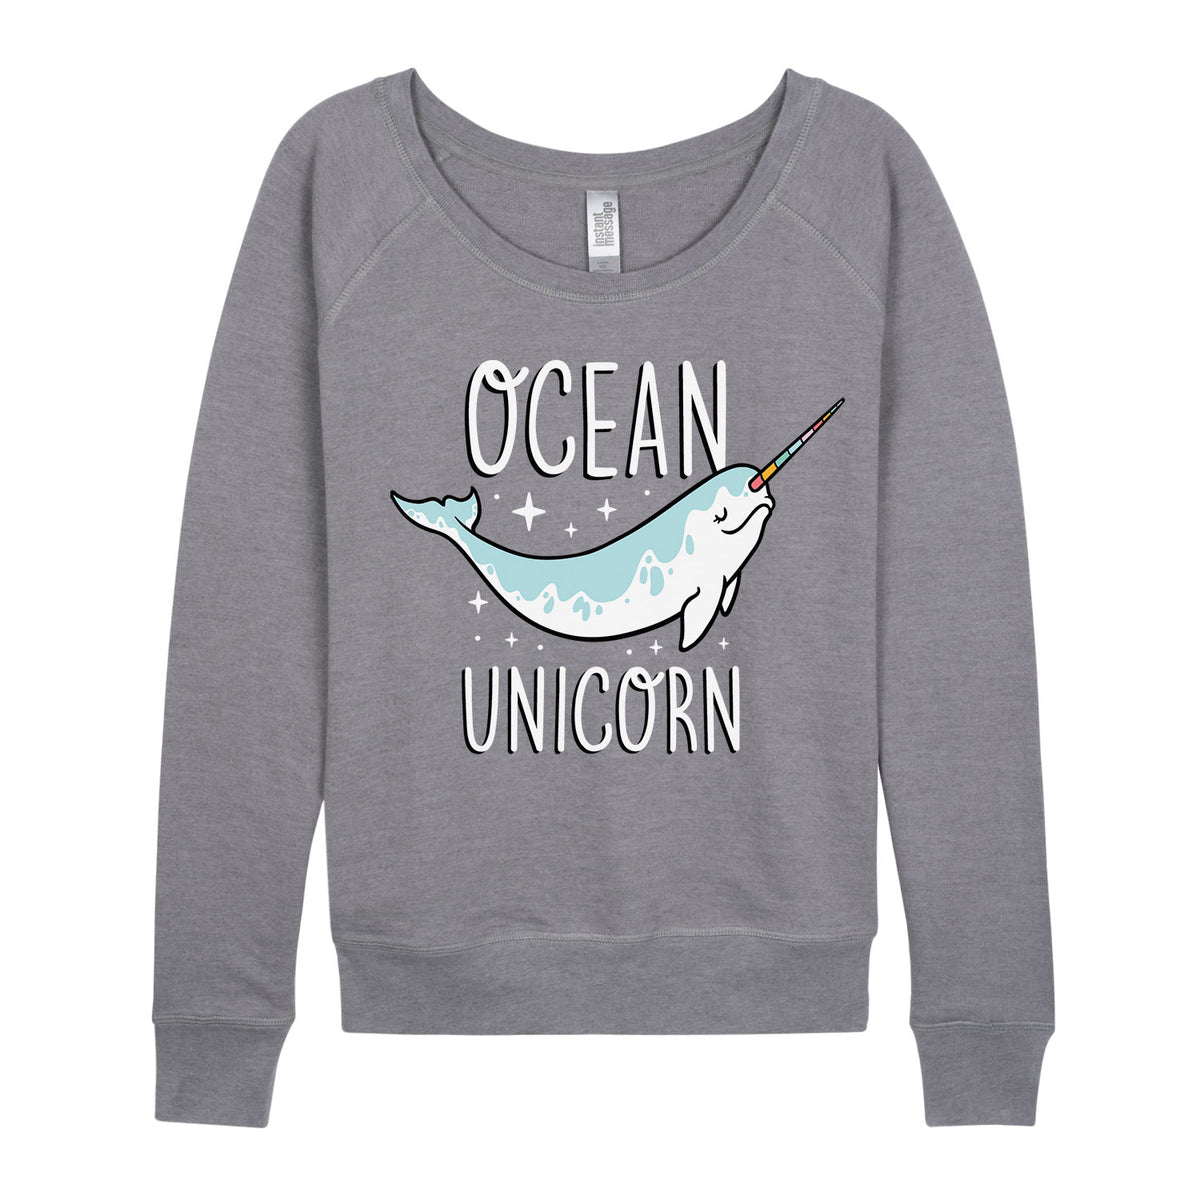 Ocean Unicorn - Women's Slouchy